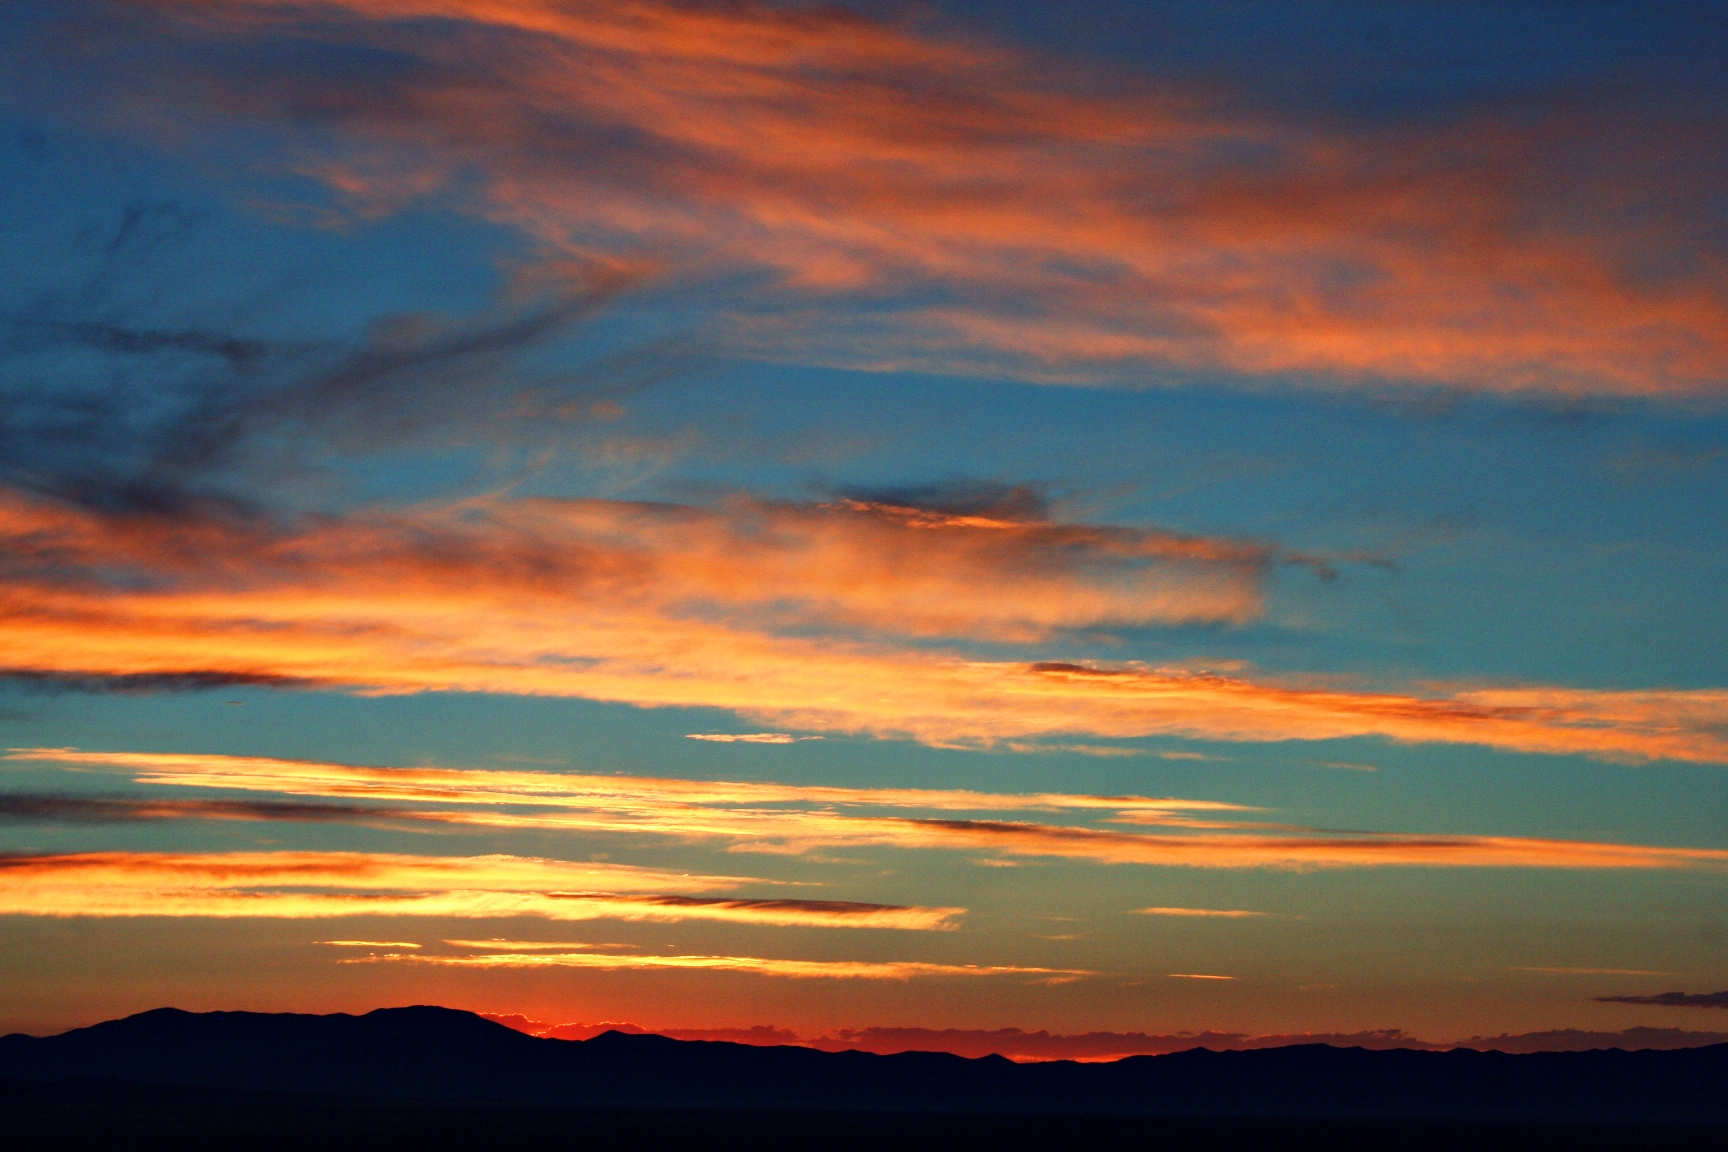 | DESERT SUNSET, NV |